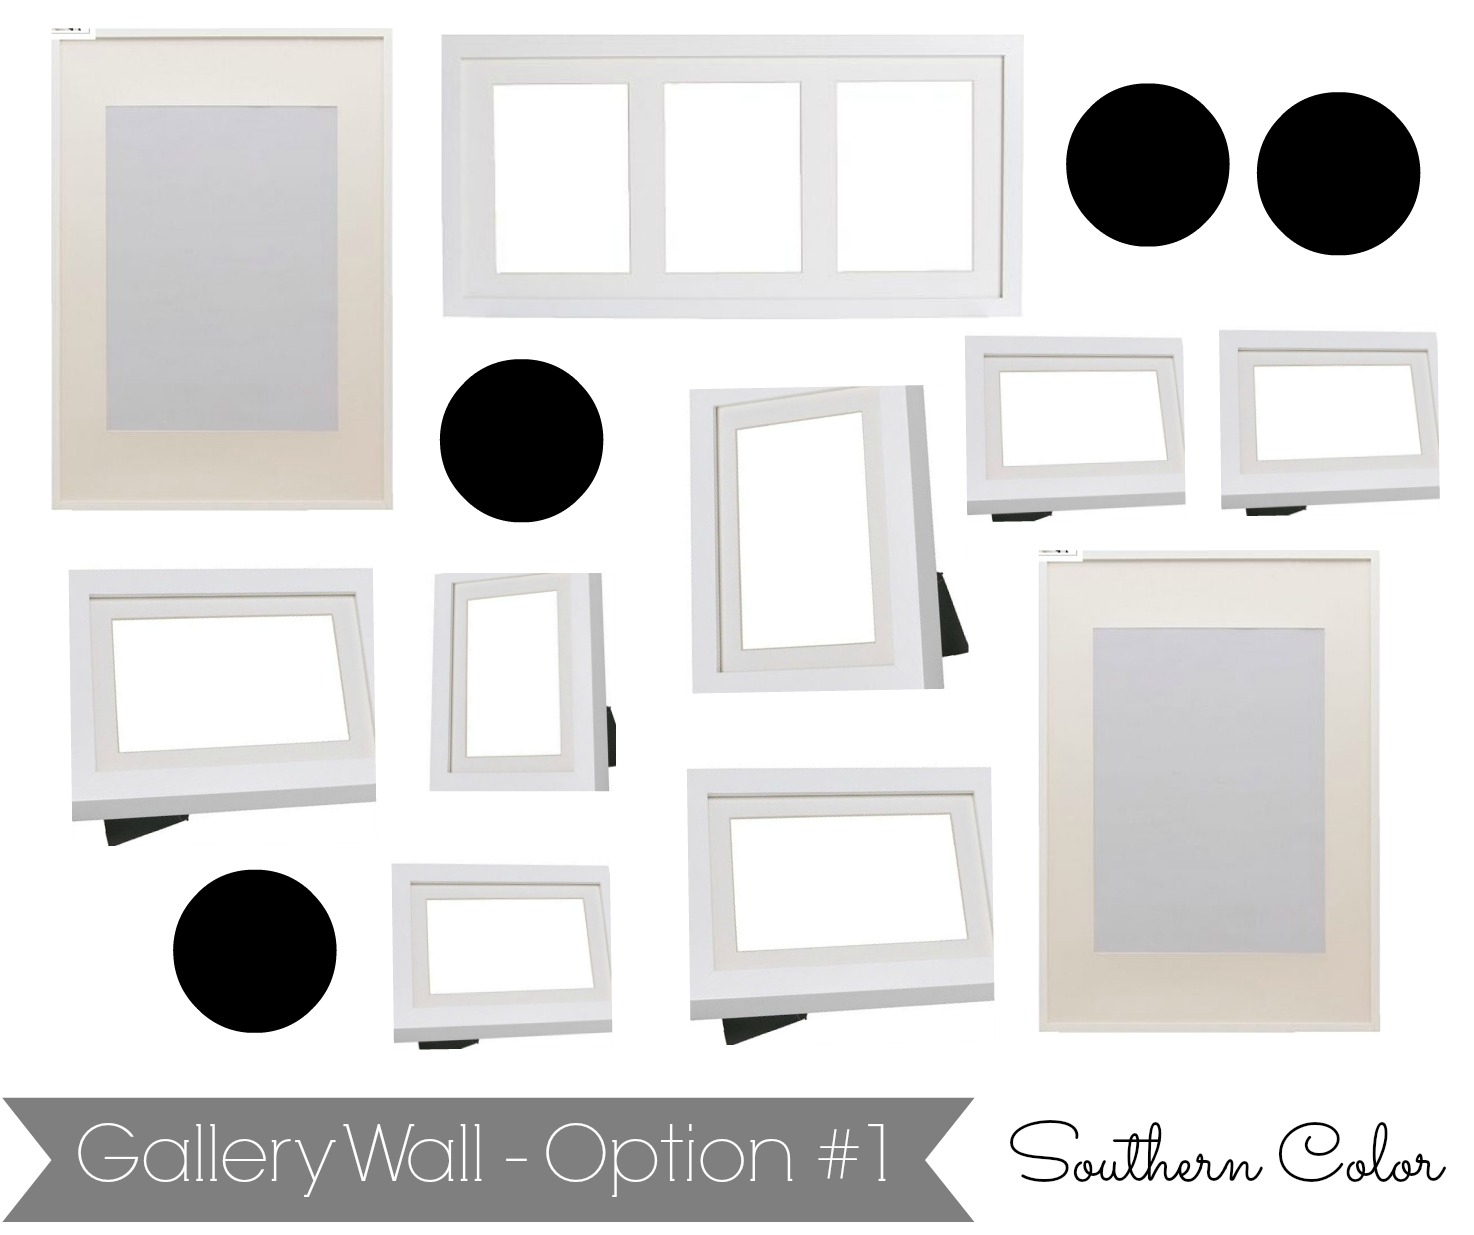 Southern Color: How to Create a Gallery Wall | Ikea Ribba Frames